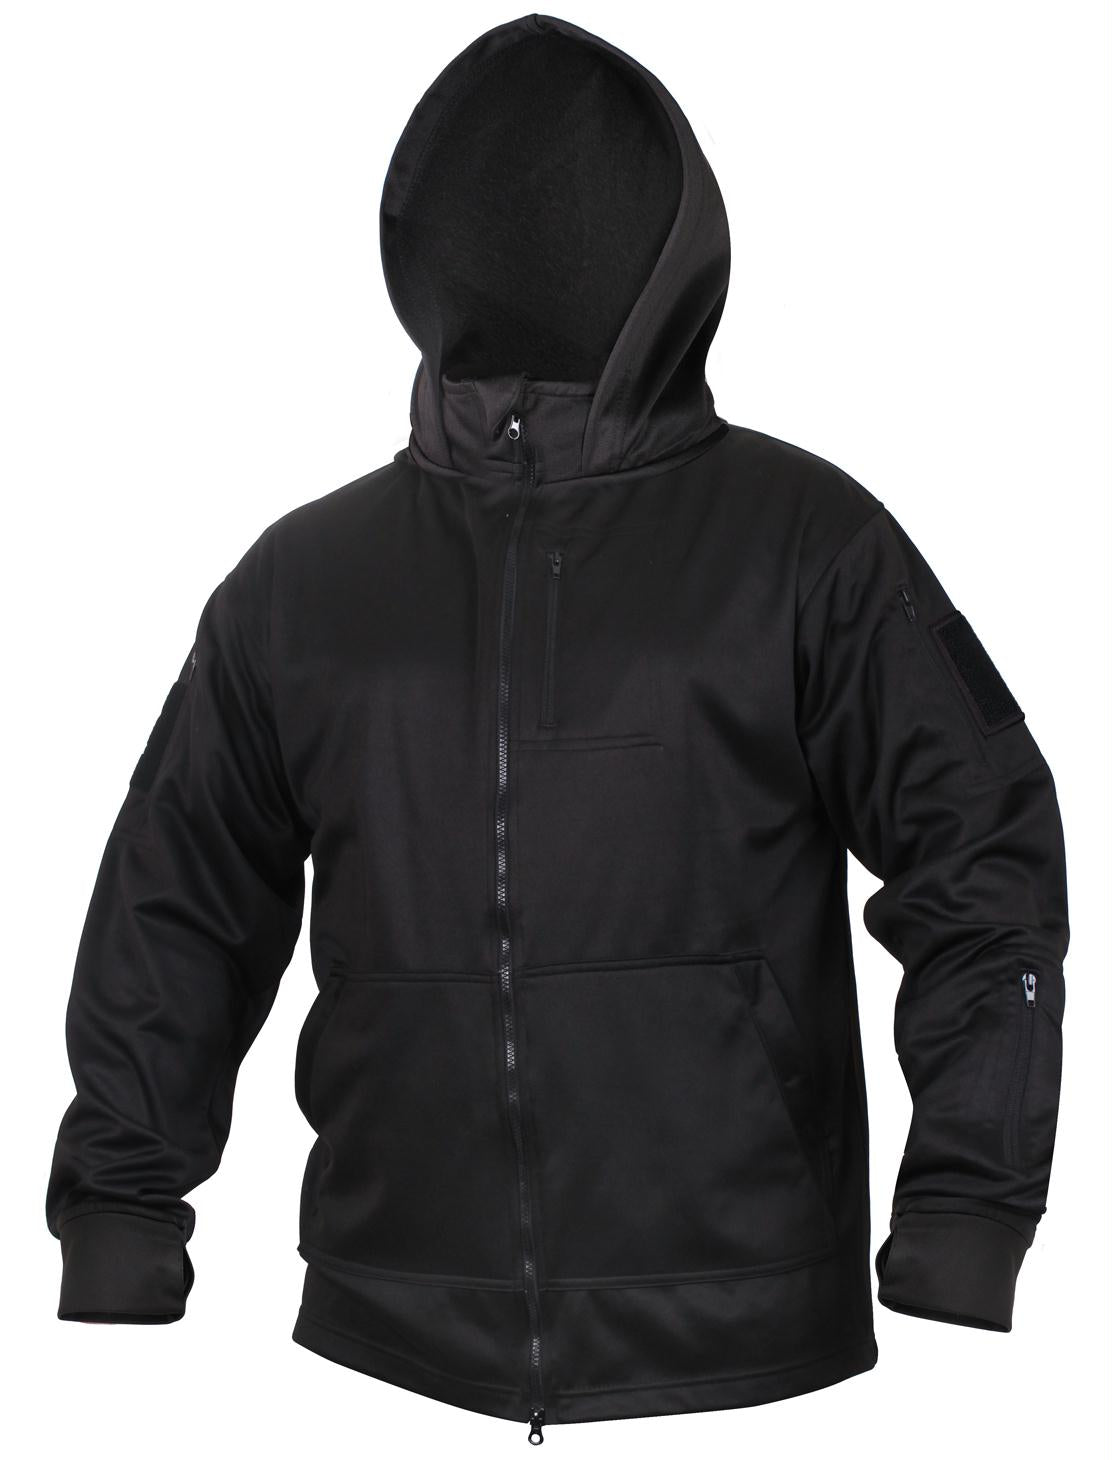 Rothco Tactical Zip Up Hoodie